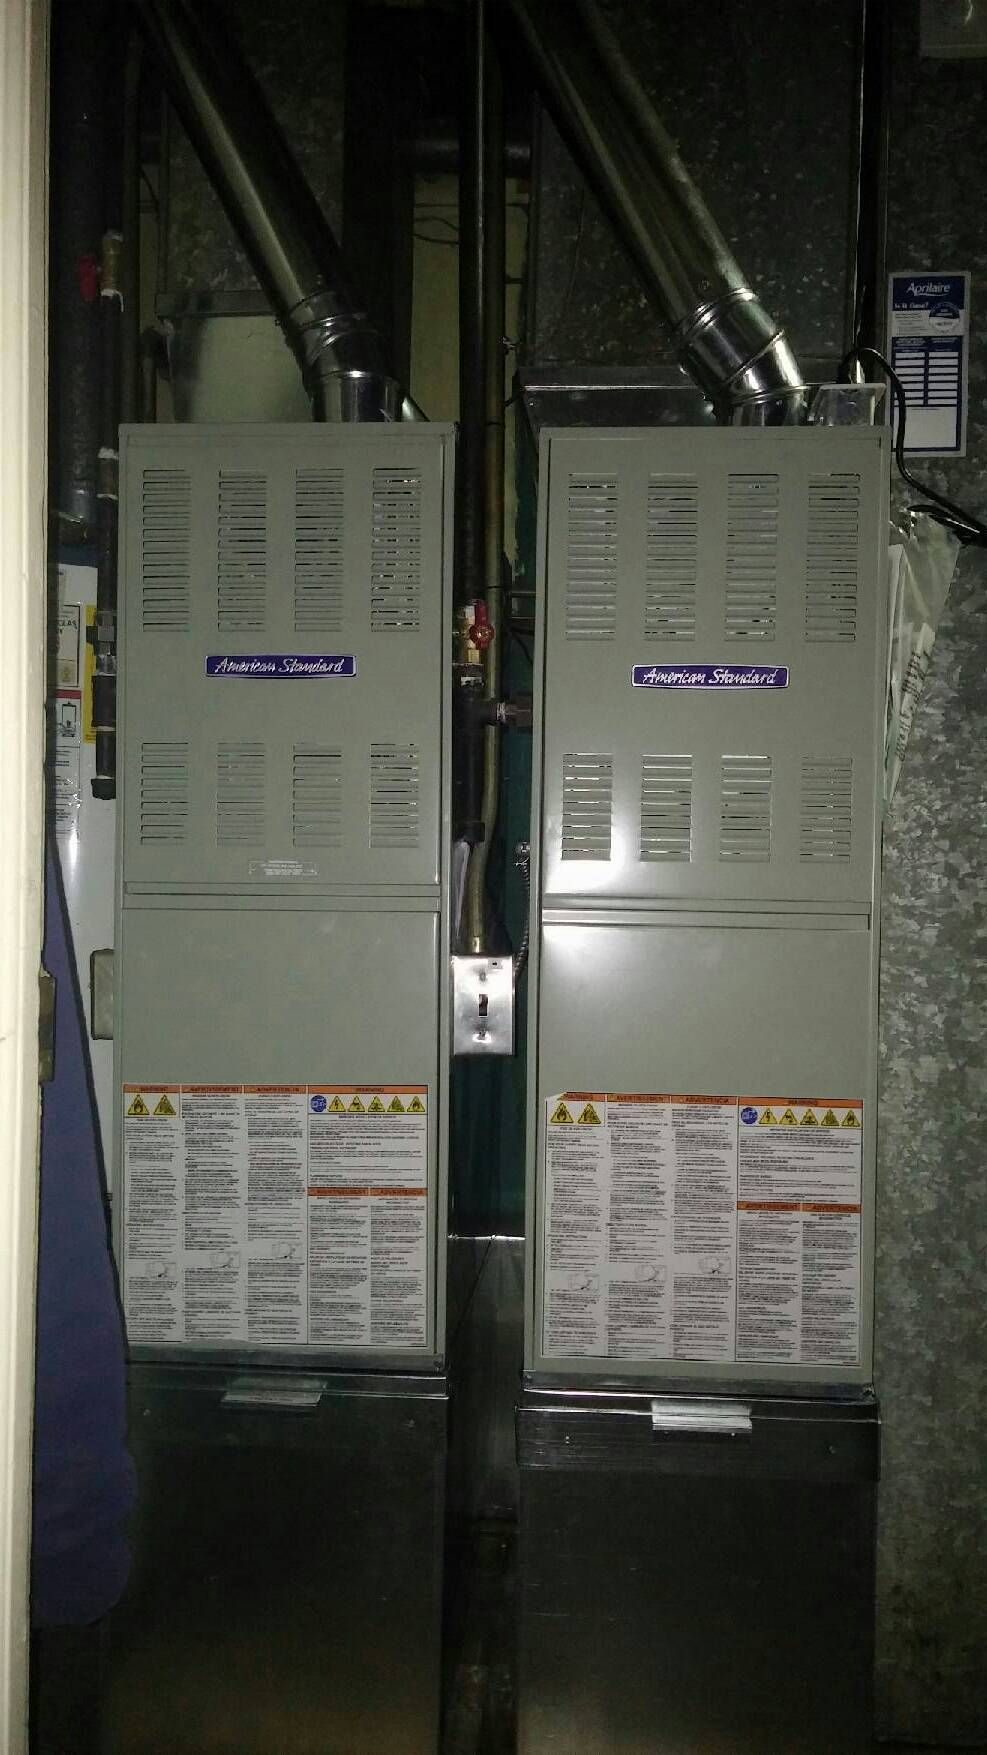 Here are 2 American Standard AUE1 furnaces mounted on